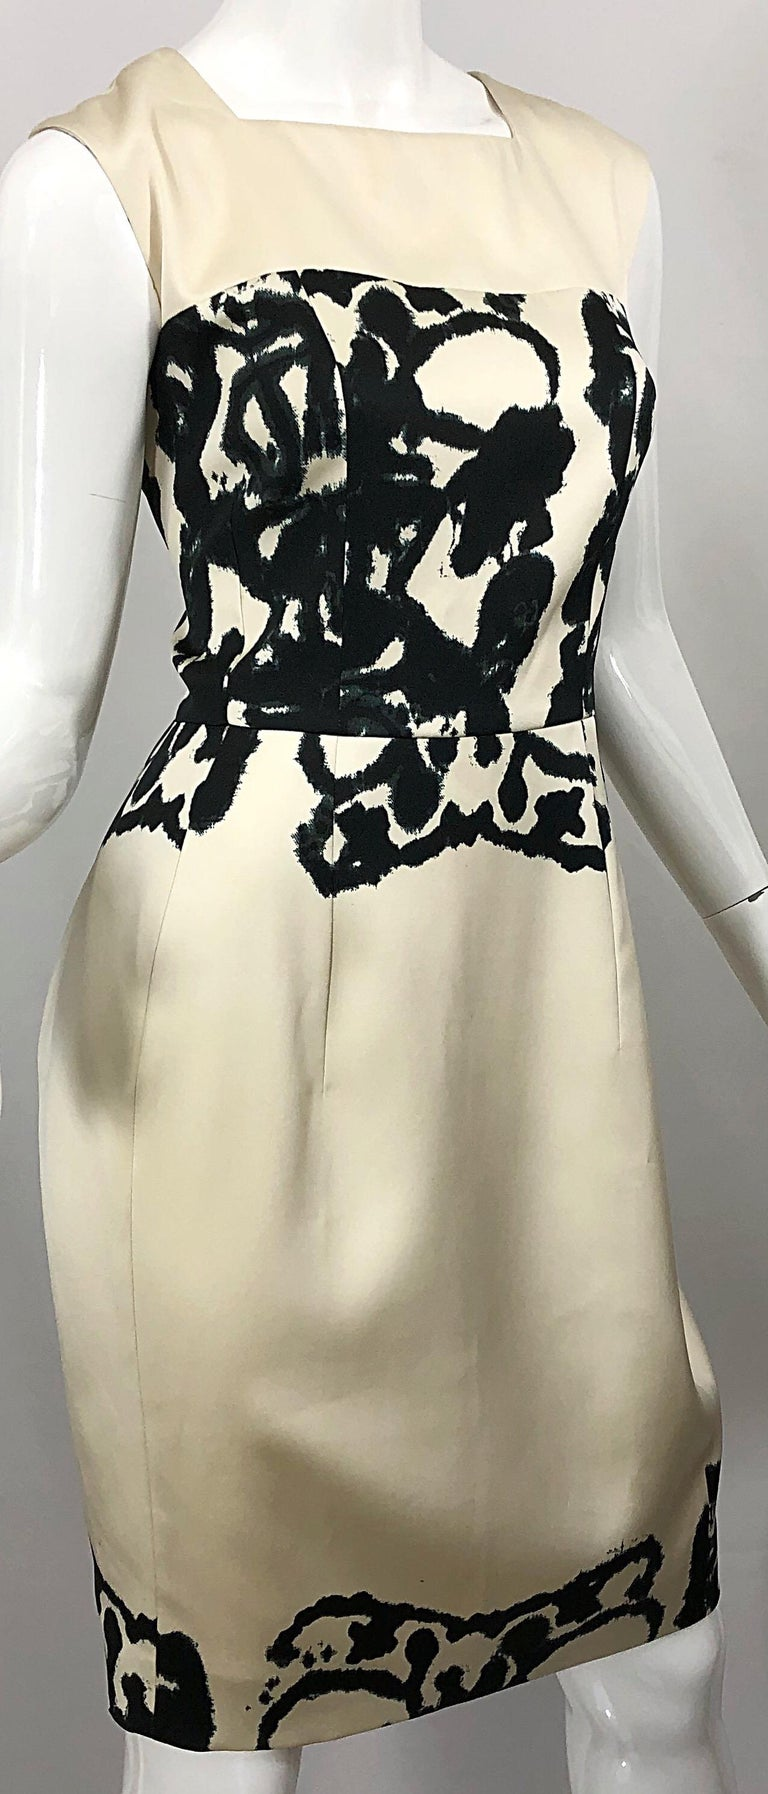 New Yves Saint Laurent Size 42 / 8-10 Ivory and Black Abstract Print Silk Dress For Sale 5